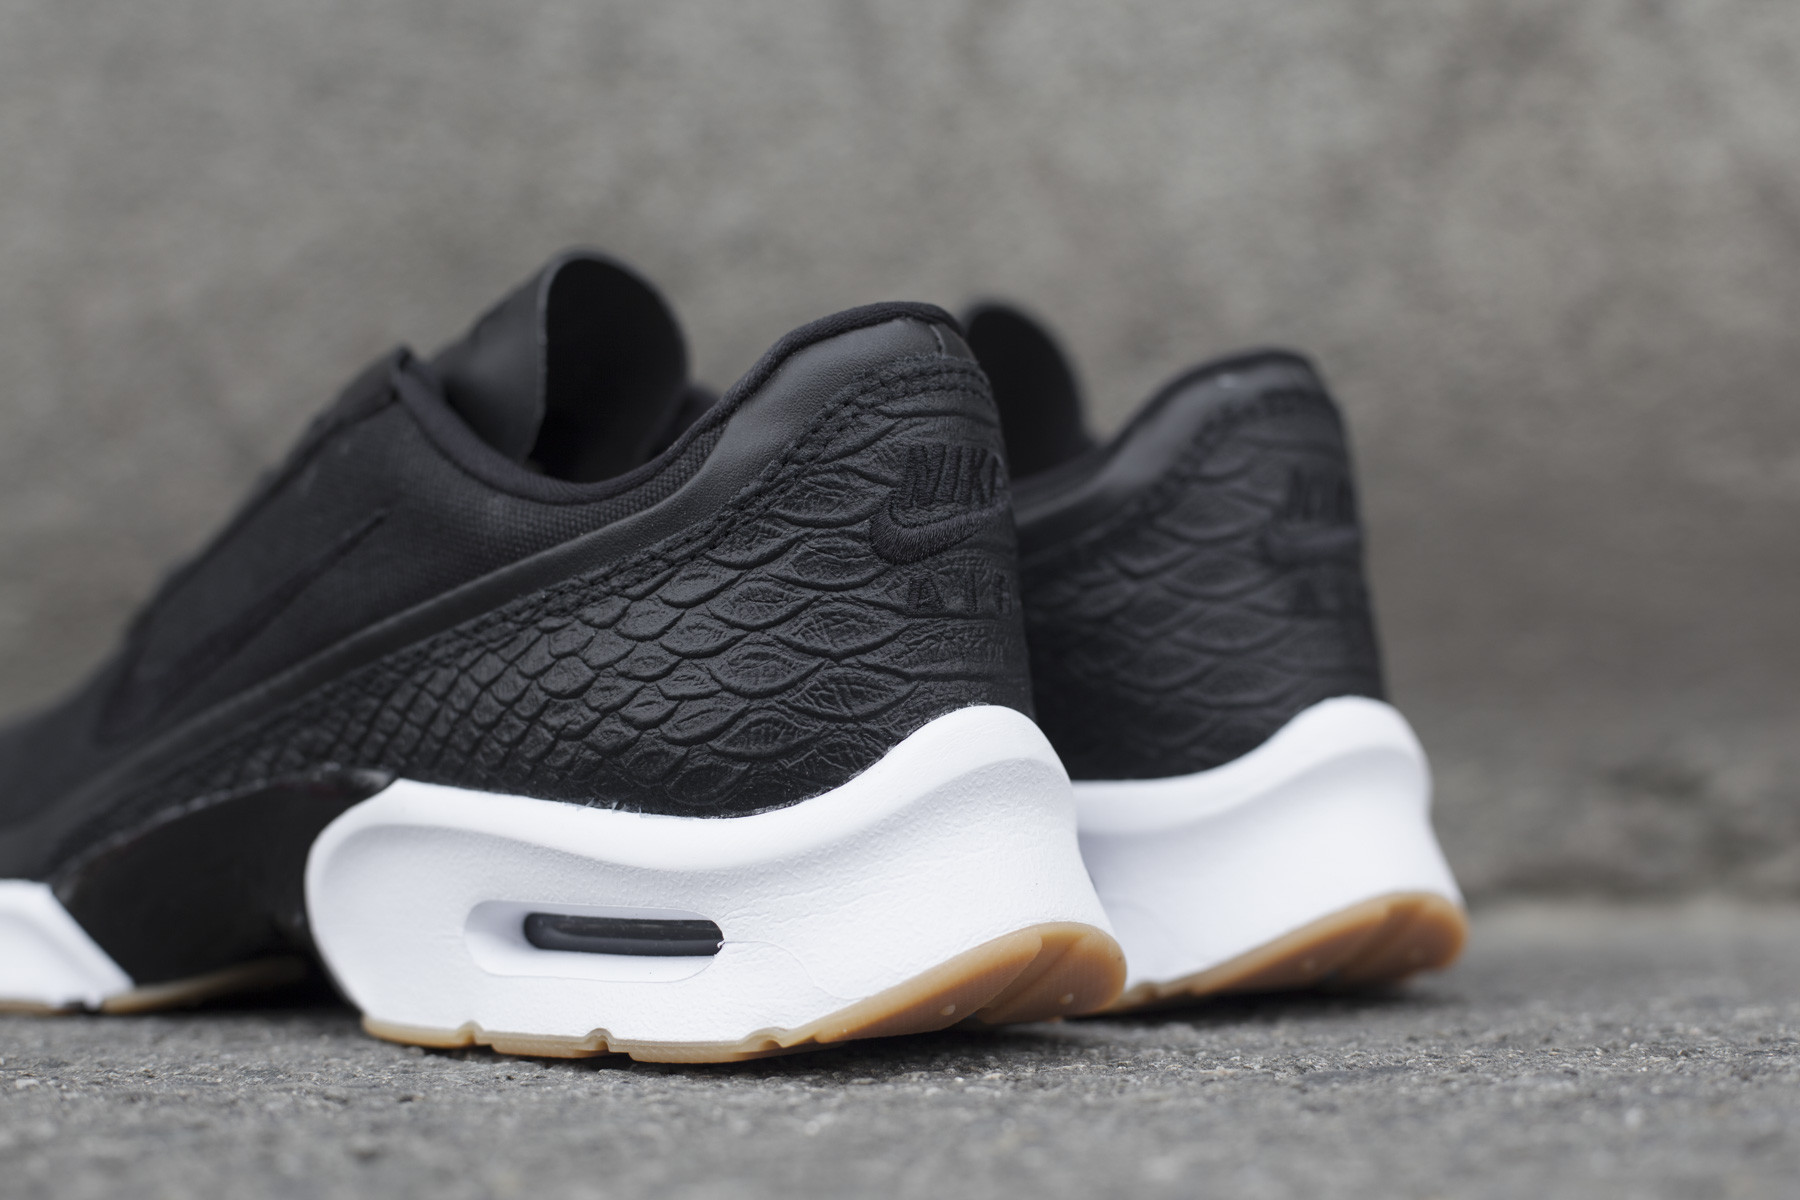 Wmns Nike Air Max Jewell SE Sneaker.no